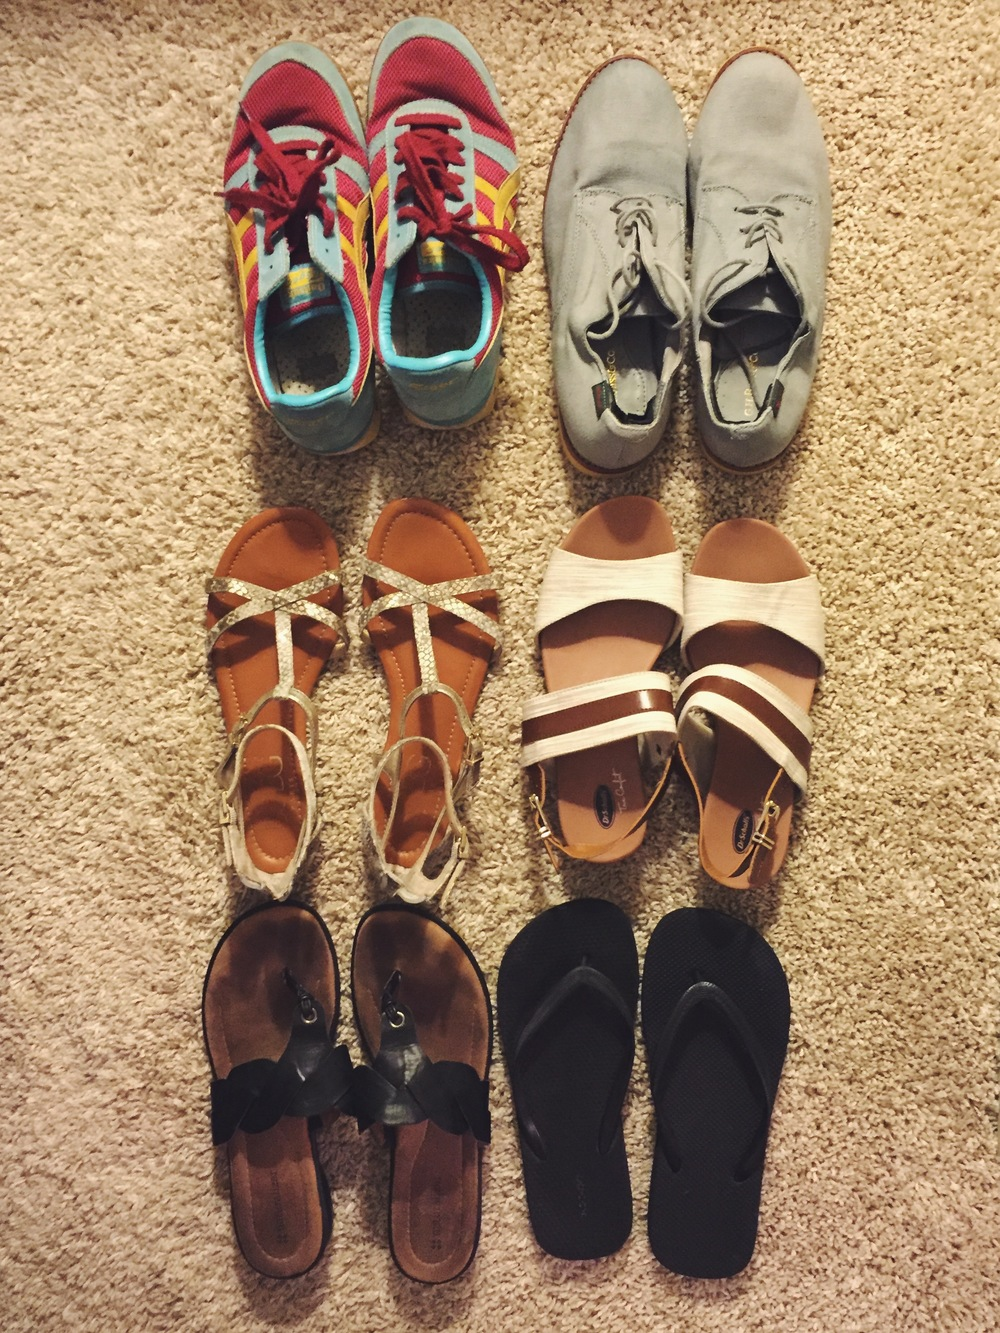 Footwear for a 2-week Summer Vacation in Europe